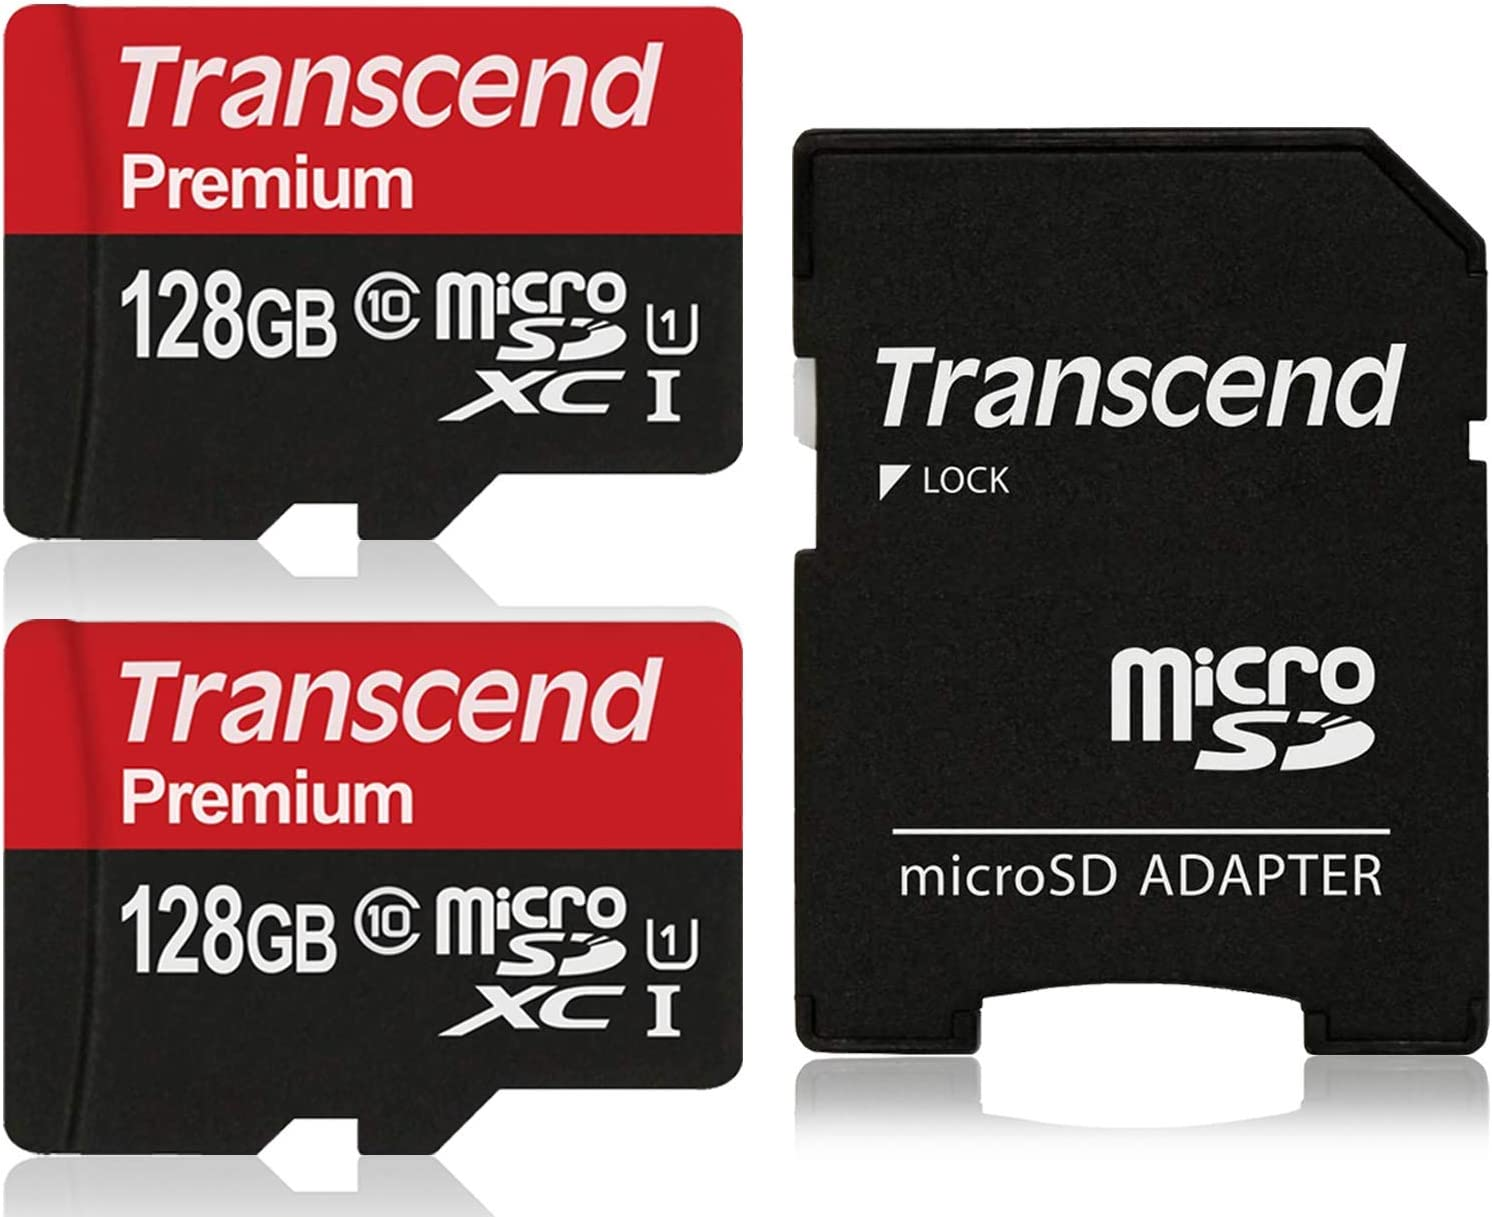 Transcend 128GB New Shipping Free Shipping x2 256GB MicroSDXC Class10 Card Max 45% OFF UHS-1 w Memory